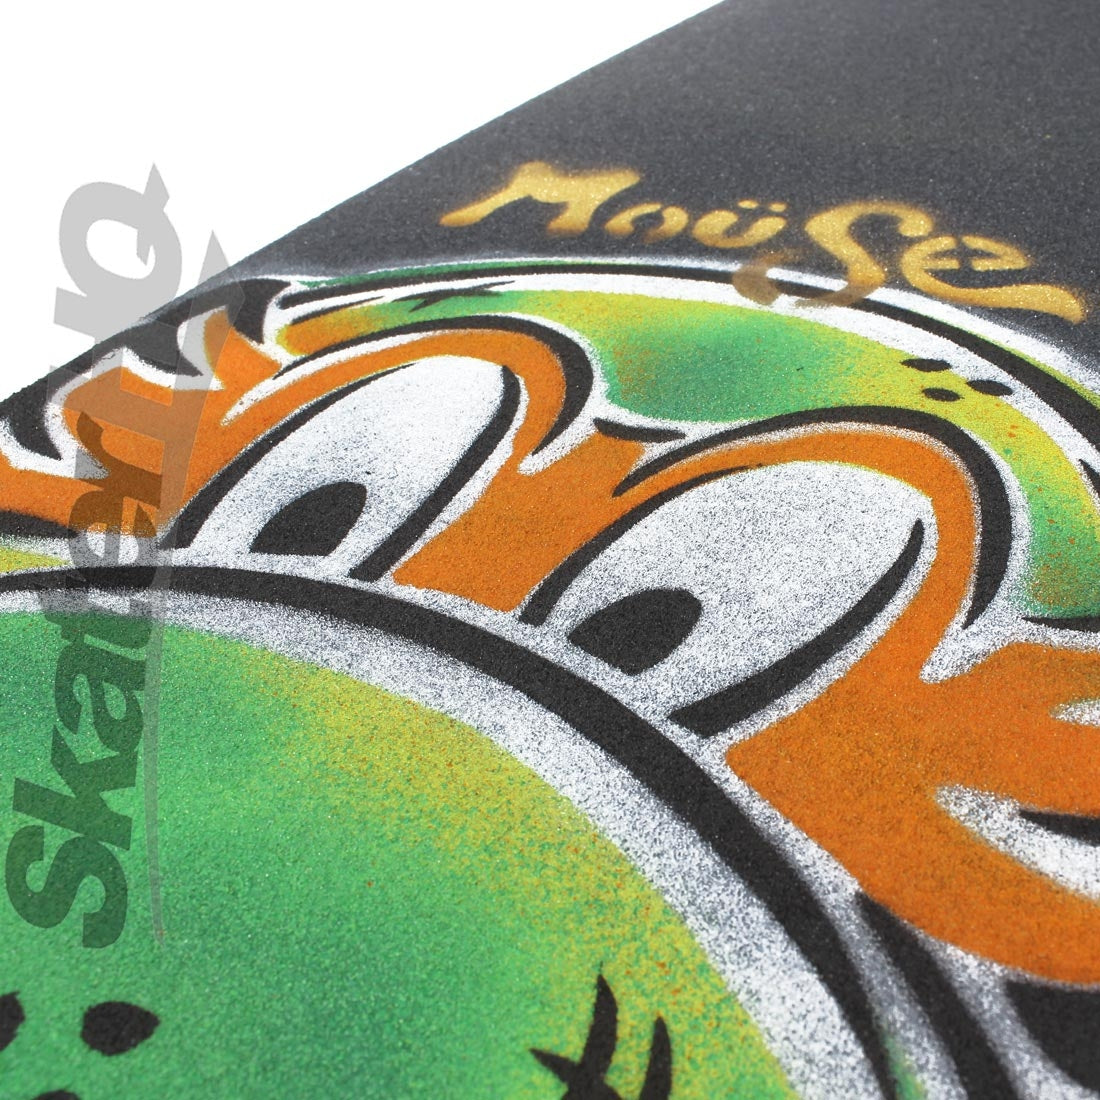 MOB Mouse Ninja Orange Griptape